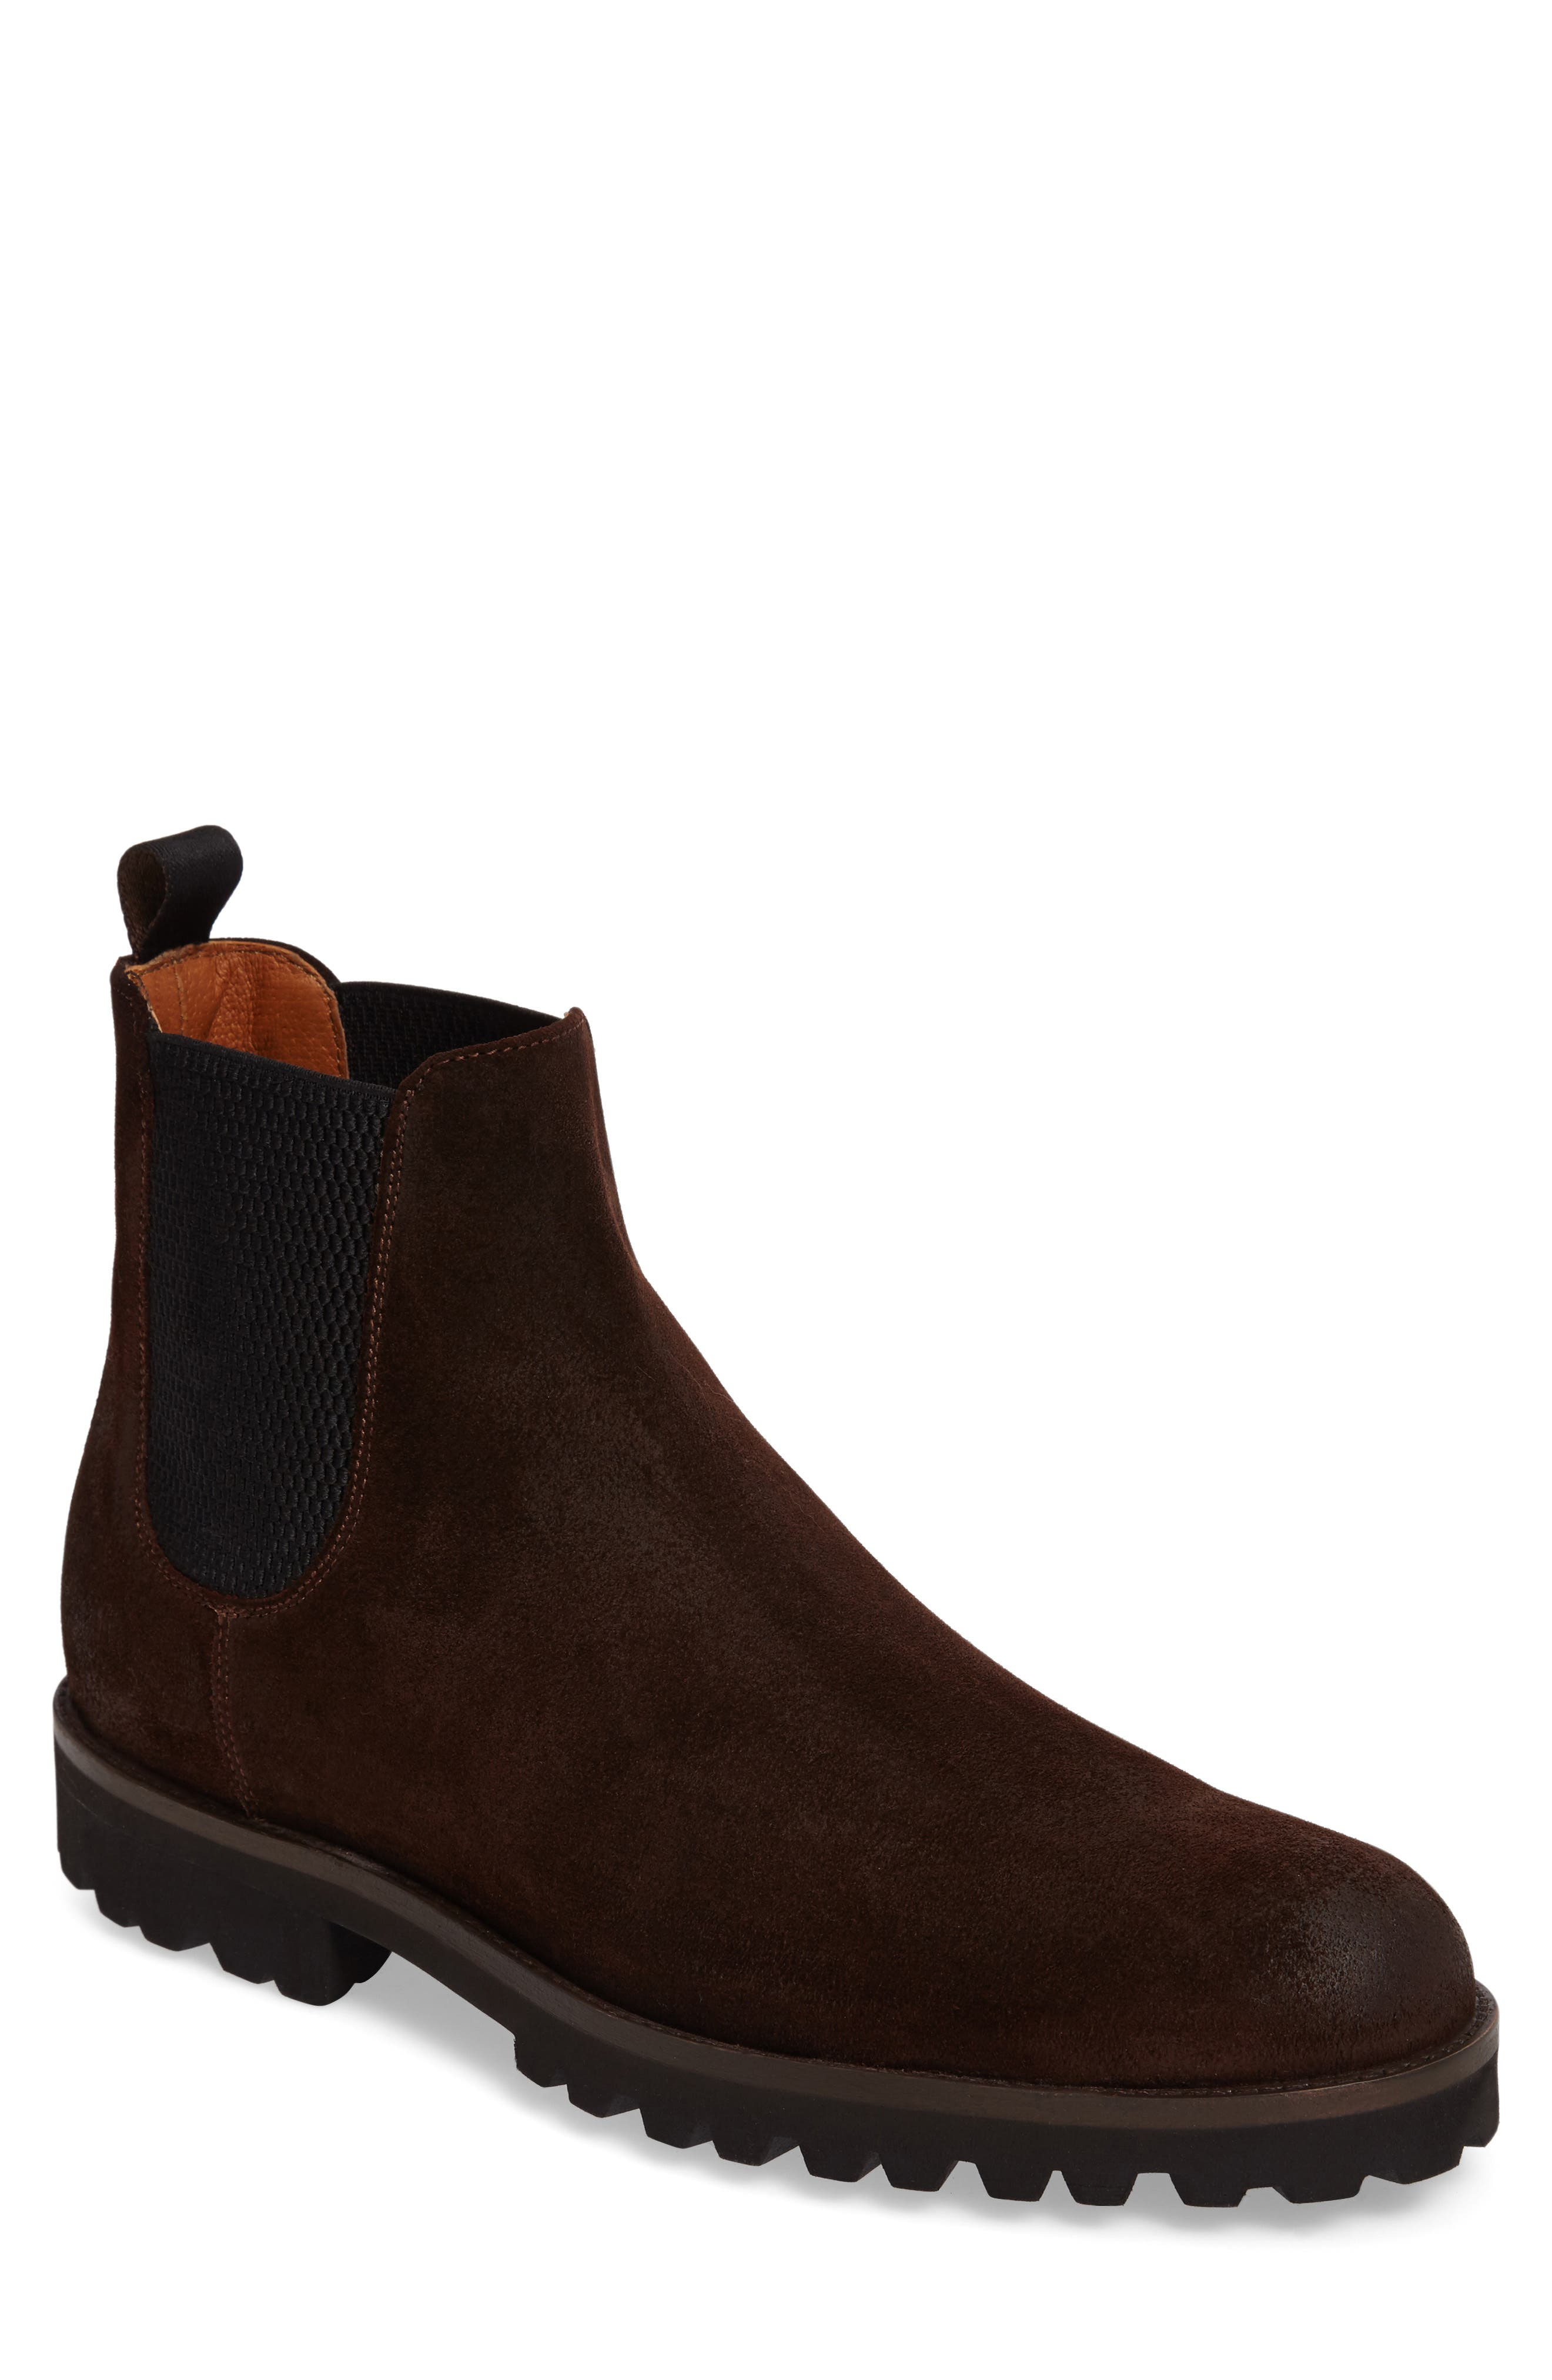 Edwin Chelsea Boot,                         Main,                         color, Dark Brown Suede